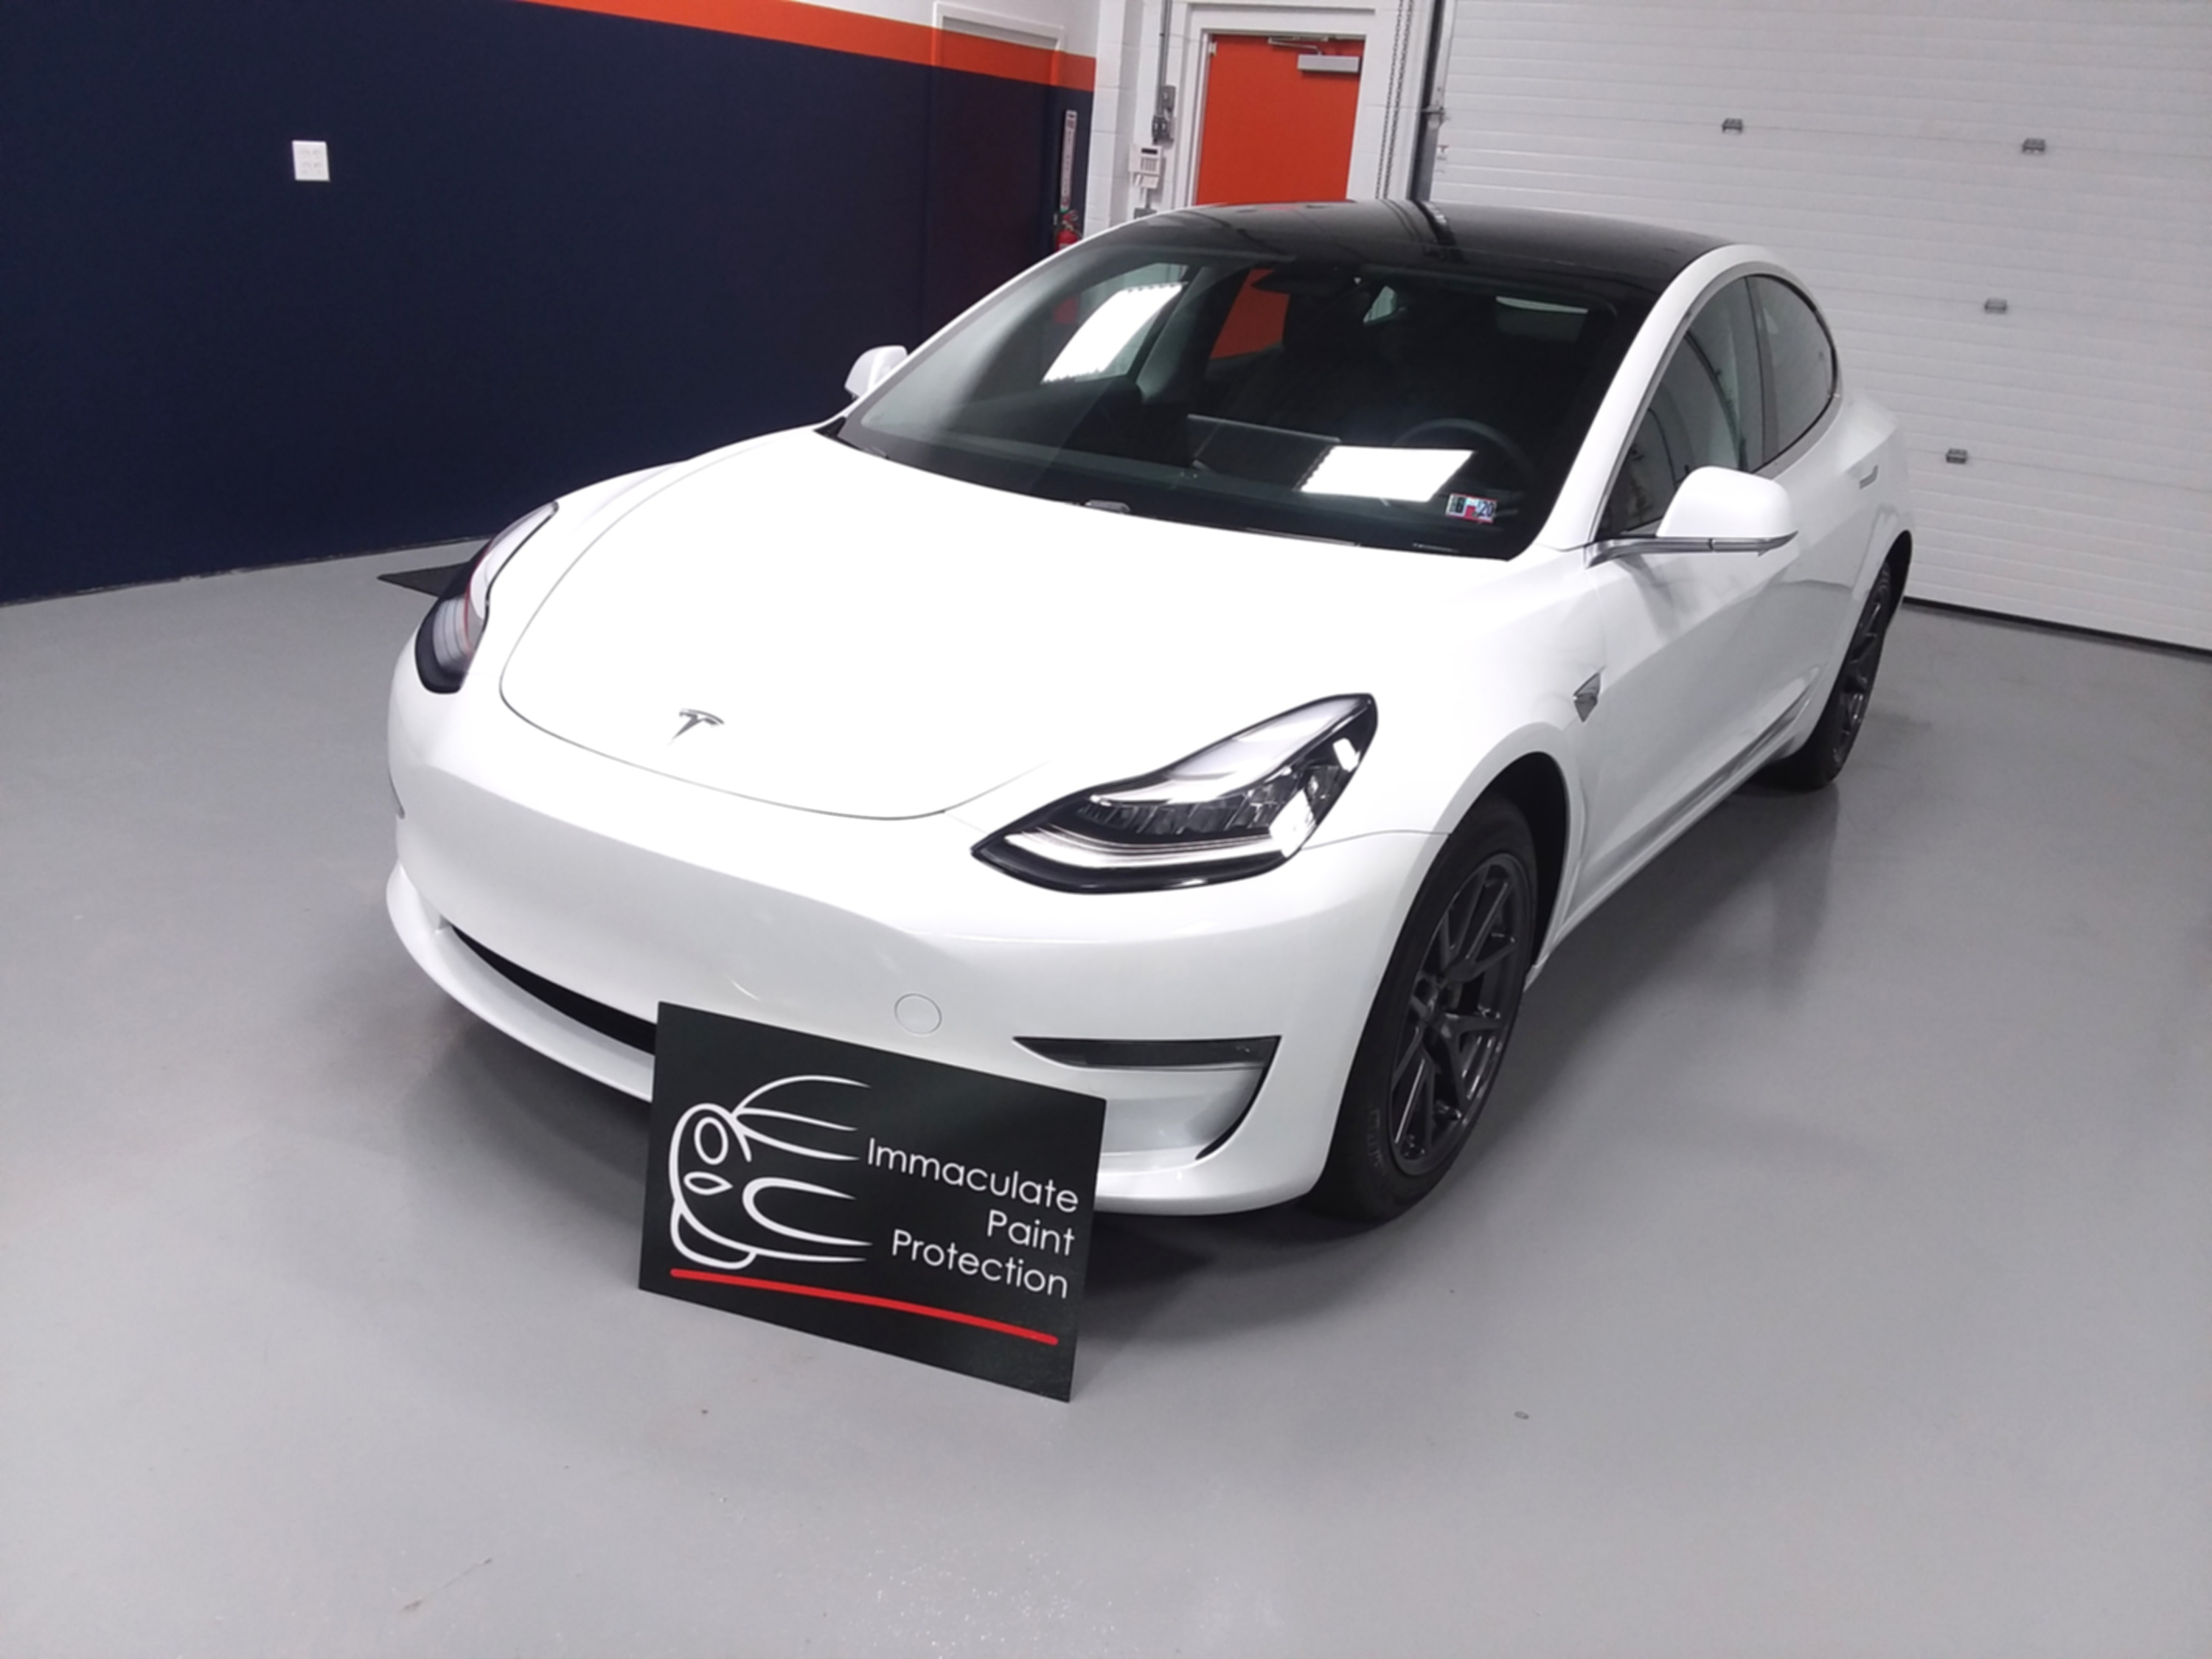 2019 Tesla Model 3 Paint Protection